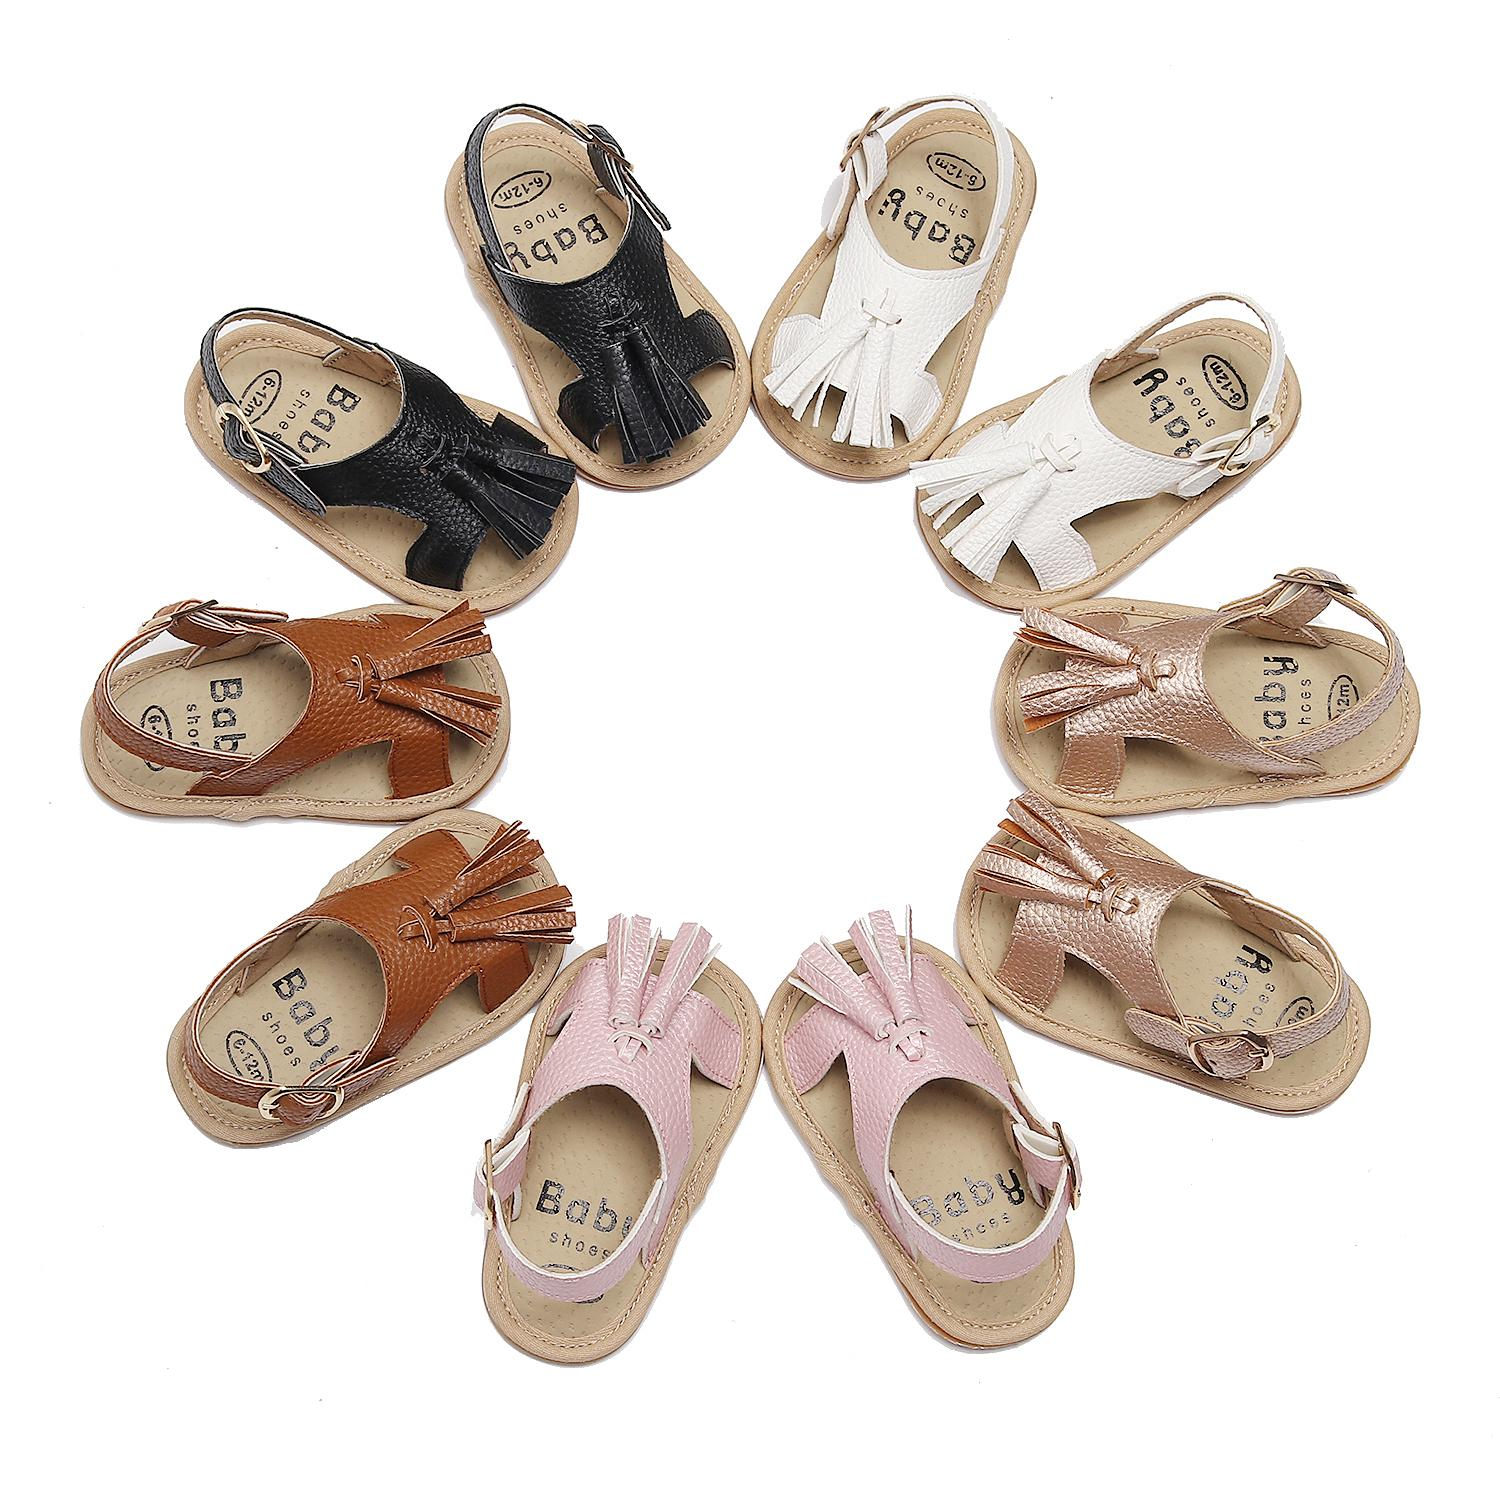 Summer Newborn Baby Girl Soft First Walkers Shoes Infant Lace-up PU Casual Single Shoe Sandals Fashion Spring Sneakers